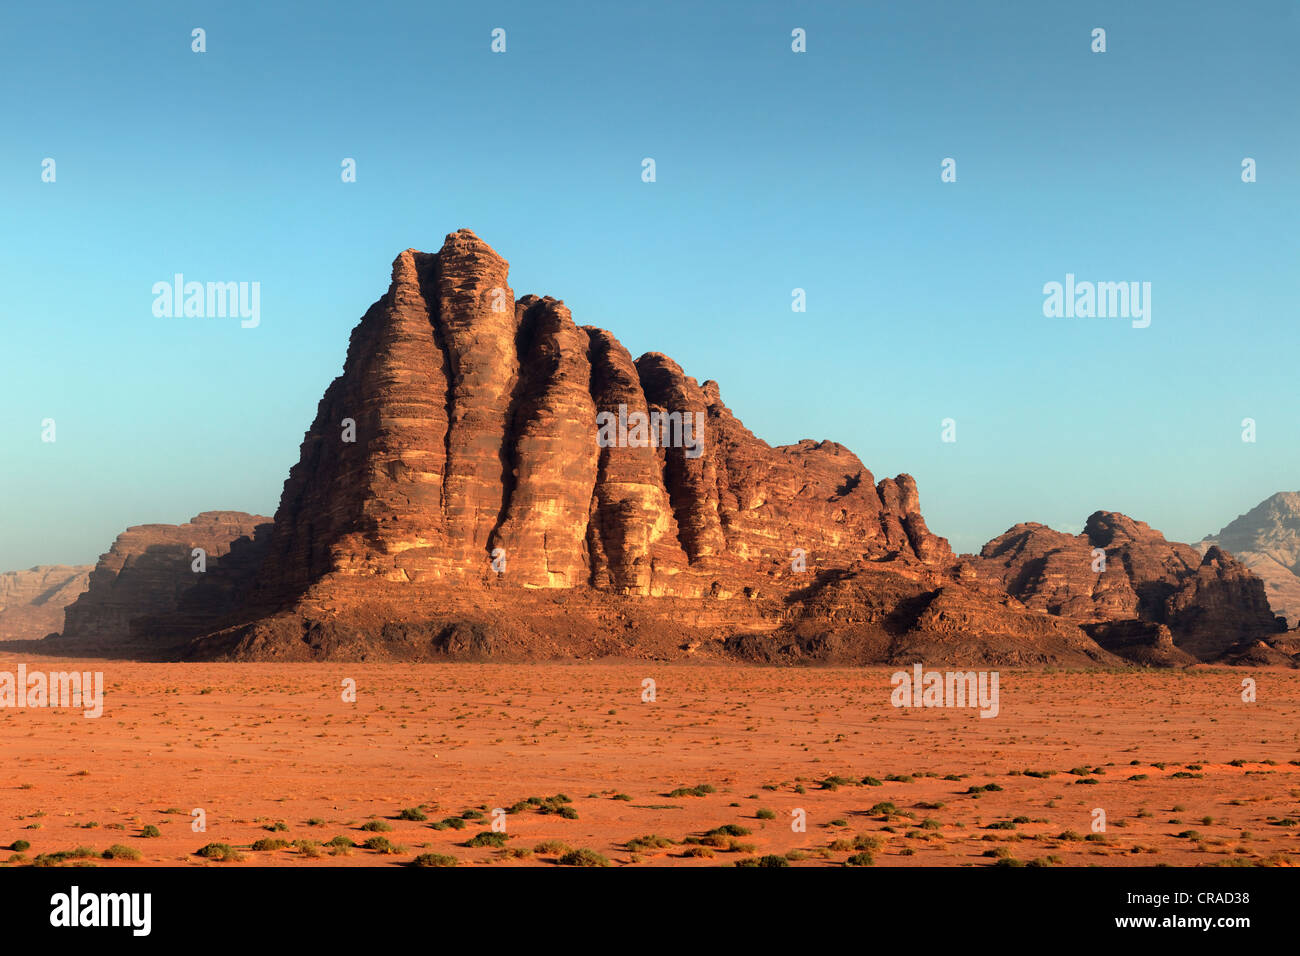 Seven Pillars of Wisdom, mountain, plain, desert, Wadi Rum, Hashemite Kingdom of Jordan, Middle East, Asia - Stock Image